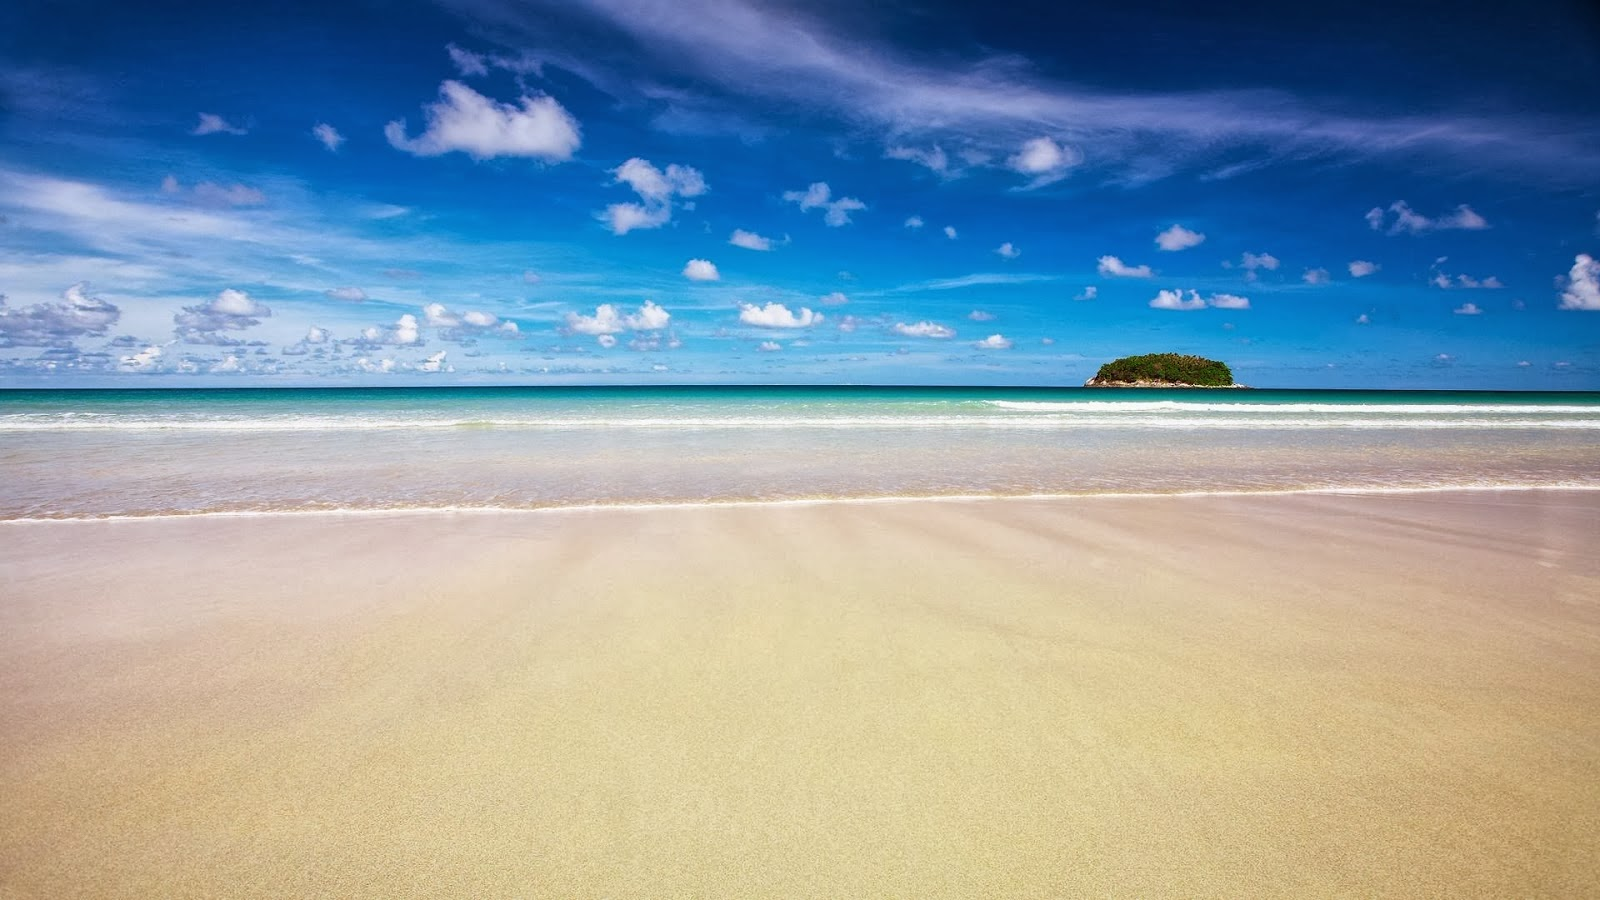 wallpapers 1080p blue water white sand beach hd wallpapers 1080p 1600x900